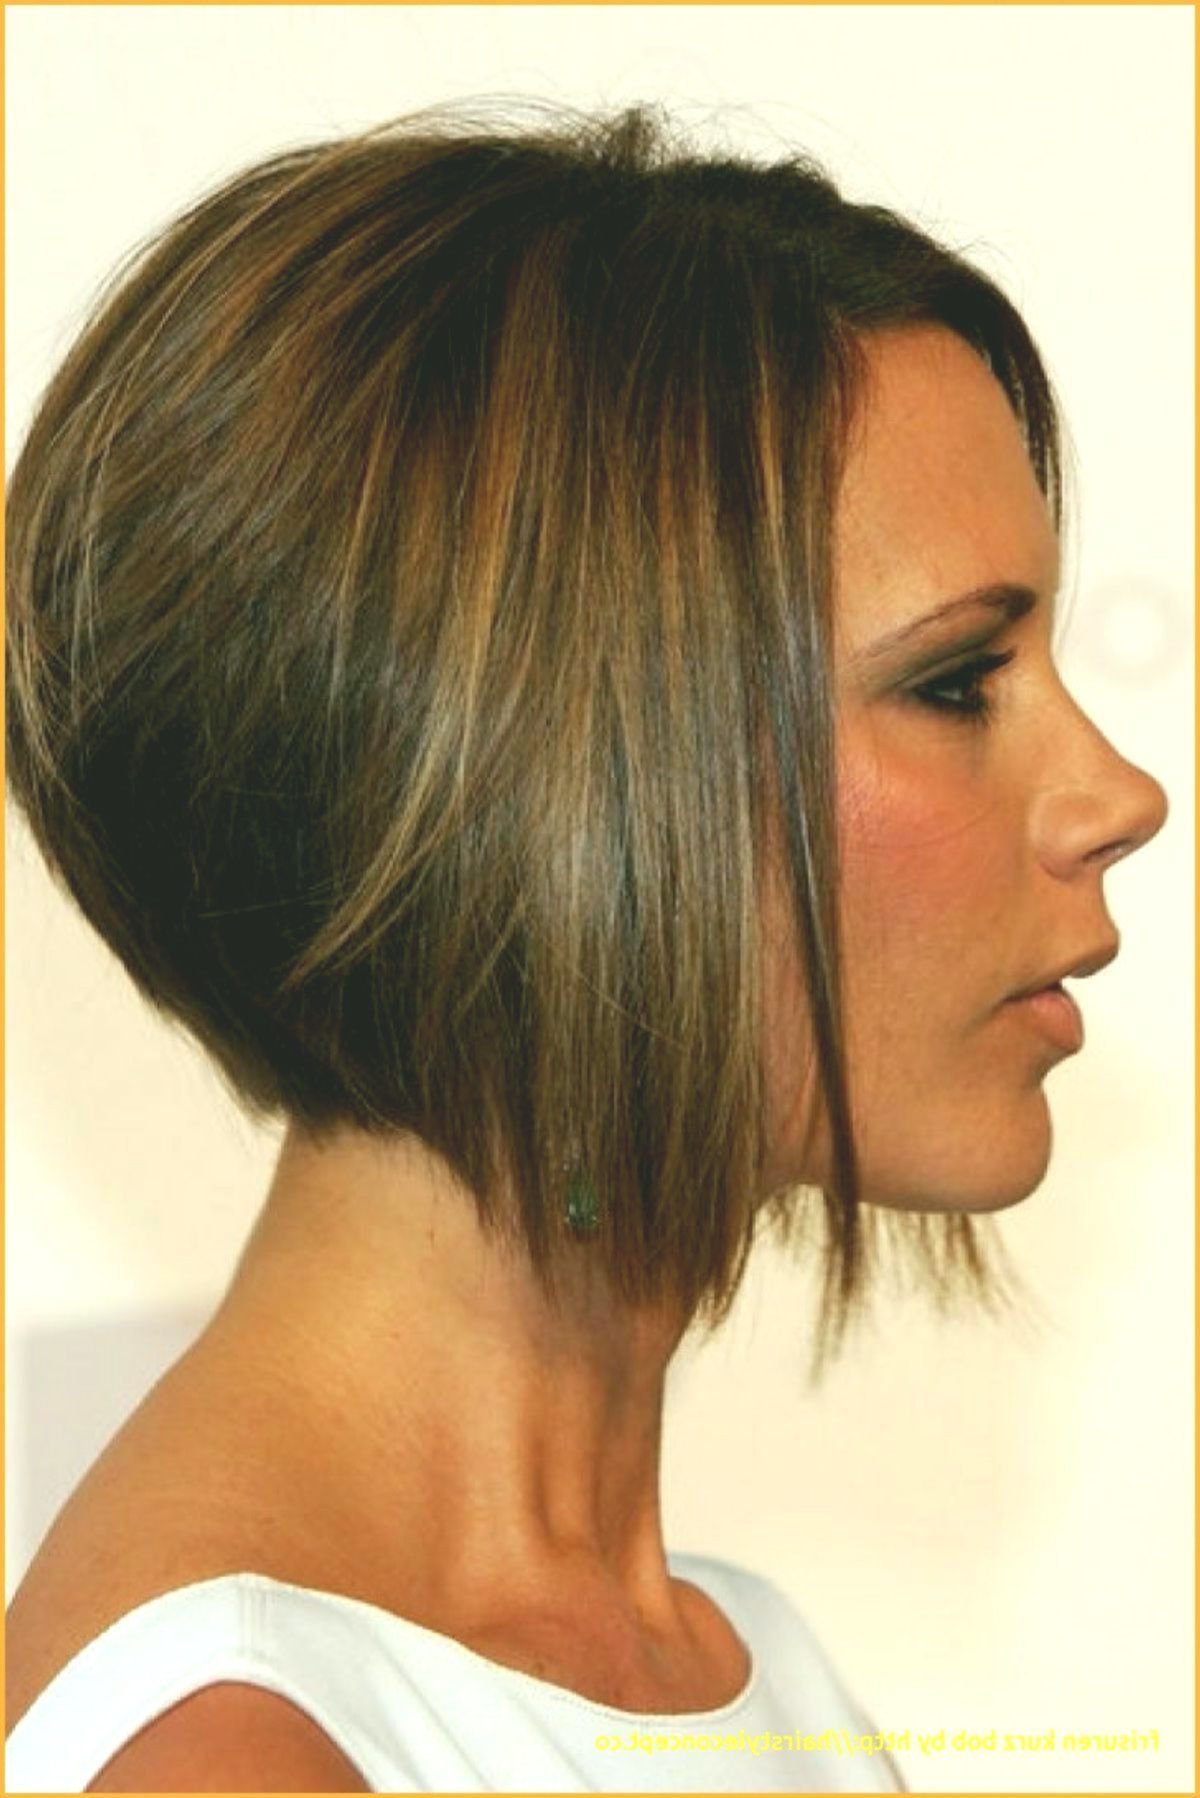 luxury women hairstyles short concept luxury women hairstyles short layout